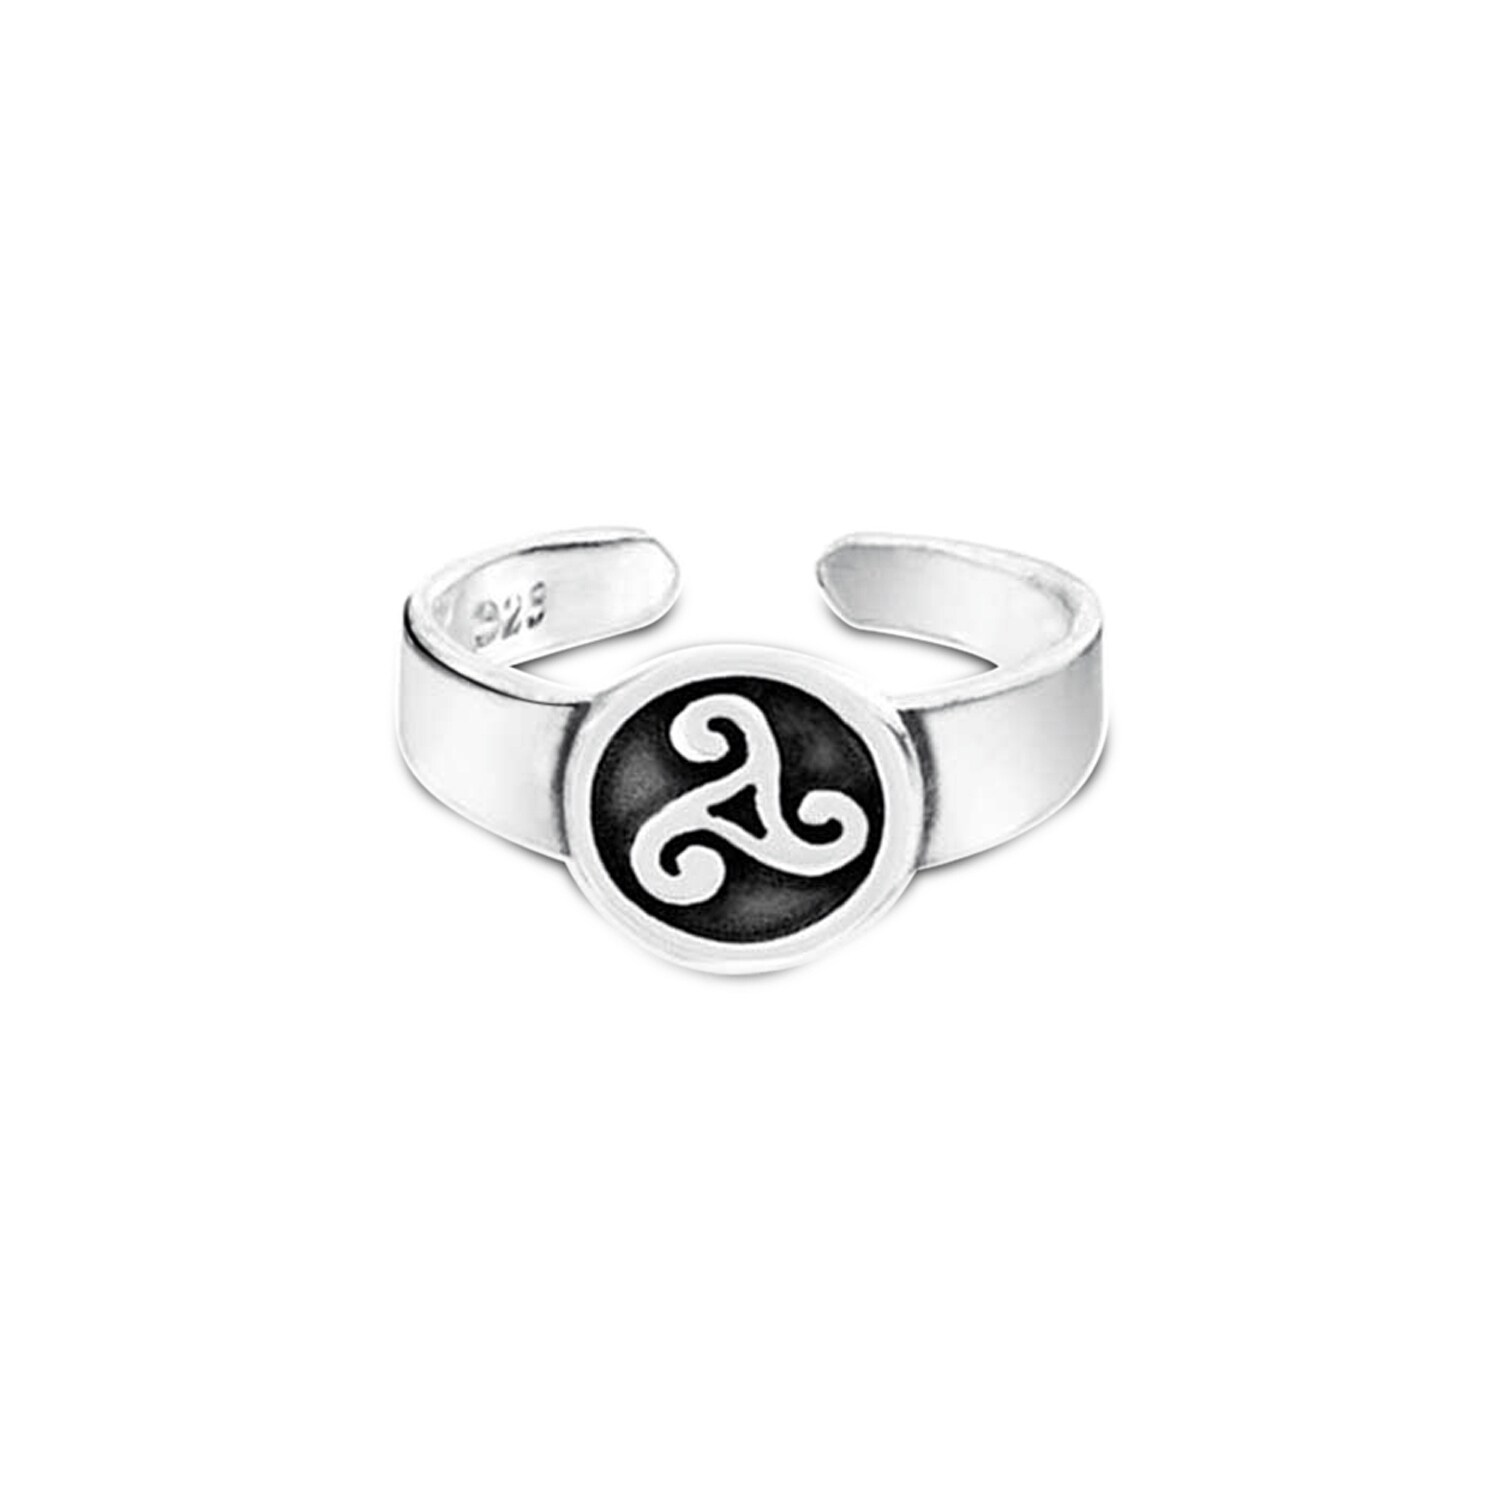 USA Seller Triquetra Celtic Ring Sterling Silver 925 Symbols Jewelry Selectable